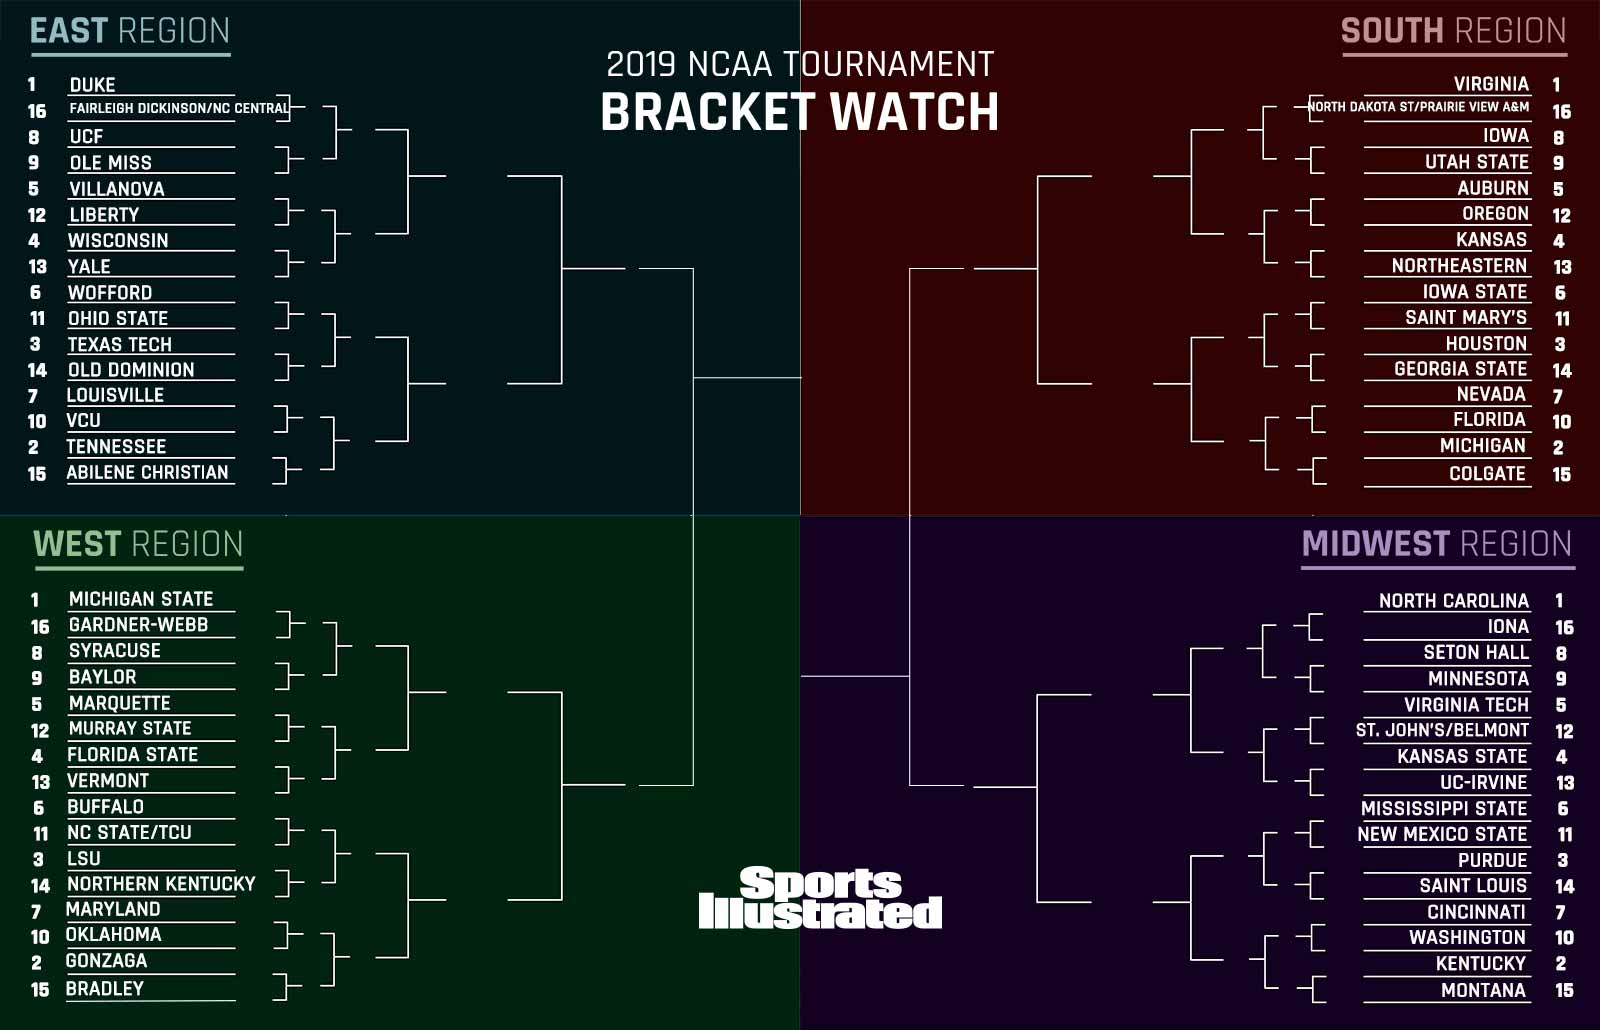 March Madness Projected 2019 Ncaa Tournament Bracket: March Madness: Projected 2019 NCAA Tournament Bracket